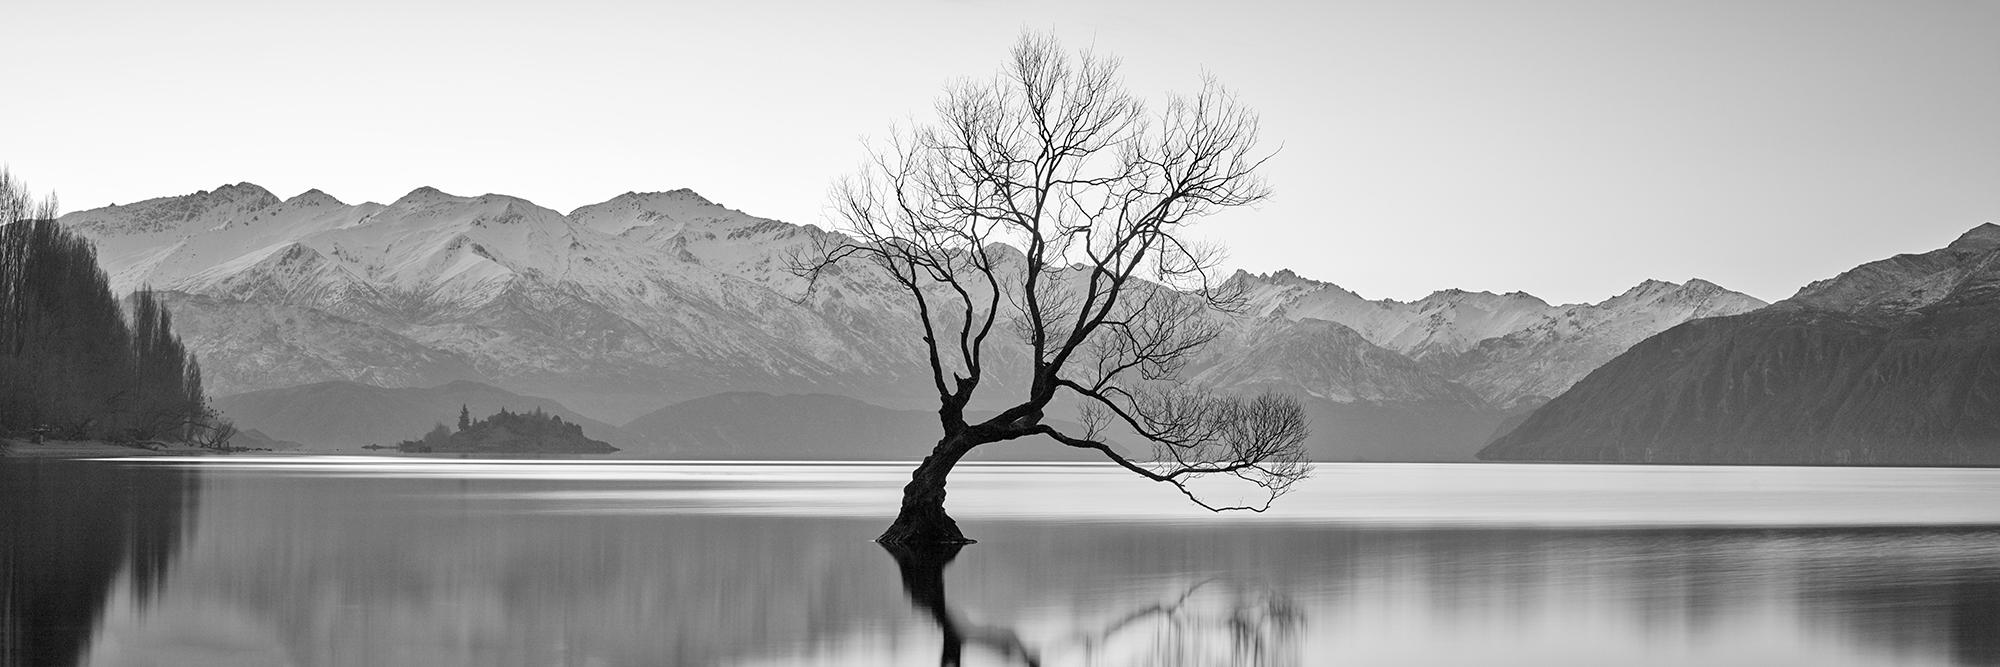 Tranquil Tree Aquabumps cf005610